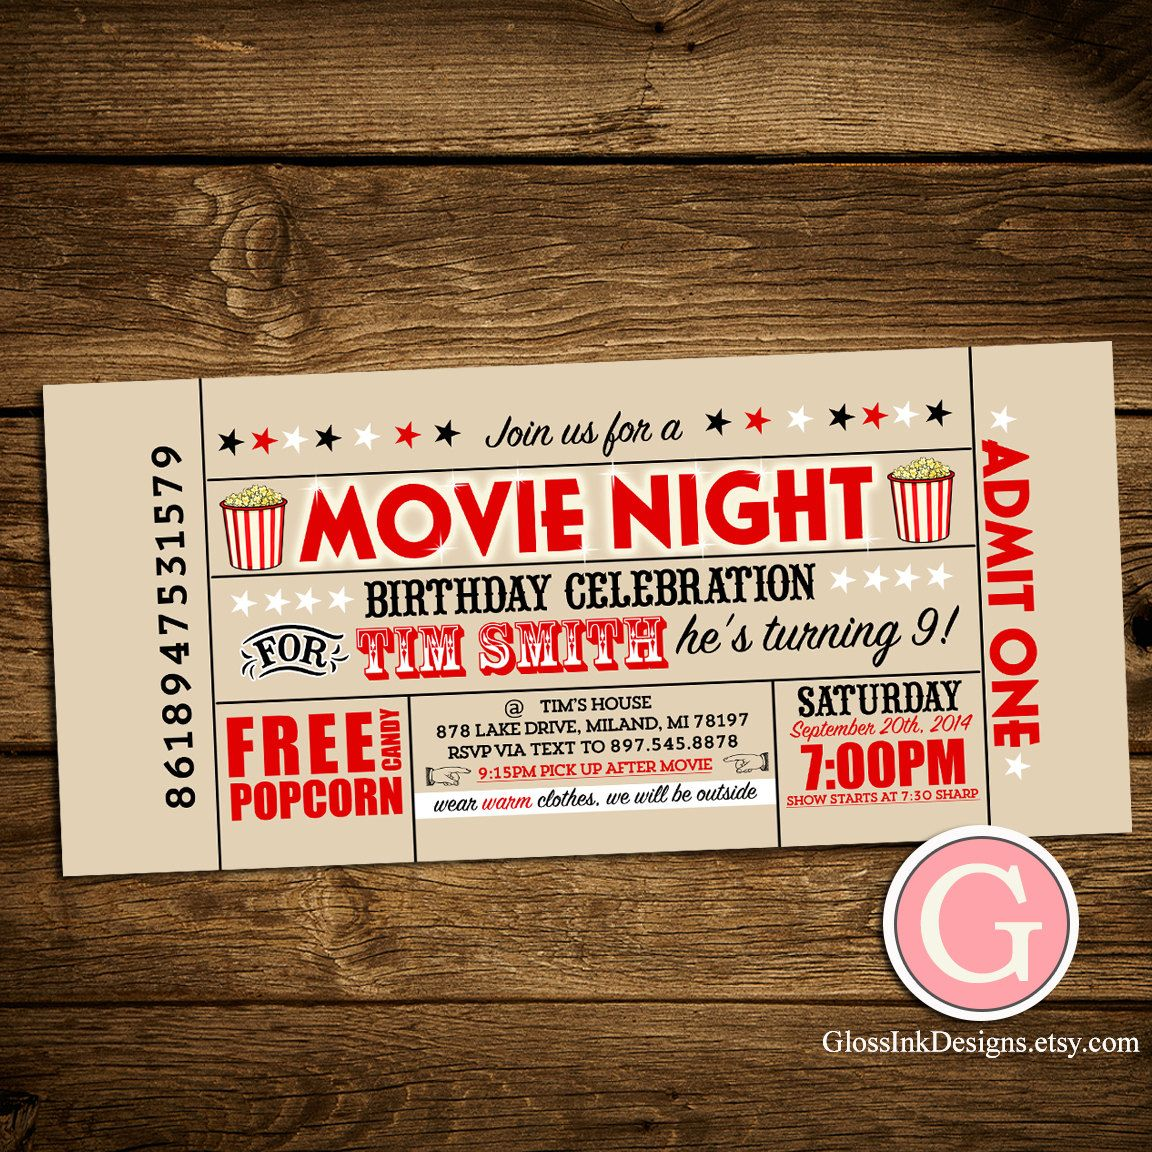 Movie Night Invitation   Vintage Ticket Style Birthday Boy Girl Twins,  Adult Party Outdoor,  Free Printable Ticket Style Invitations